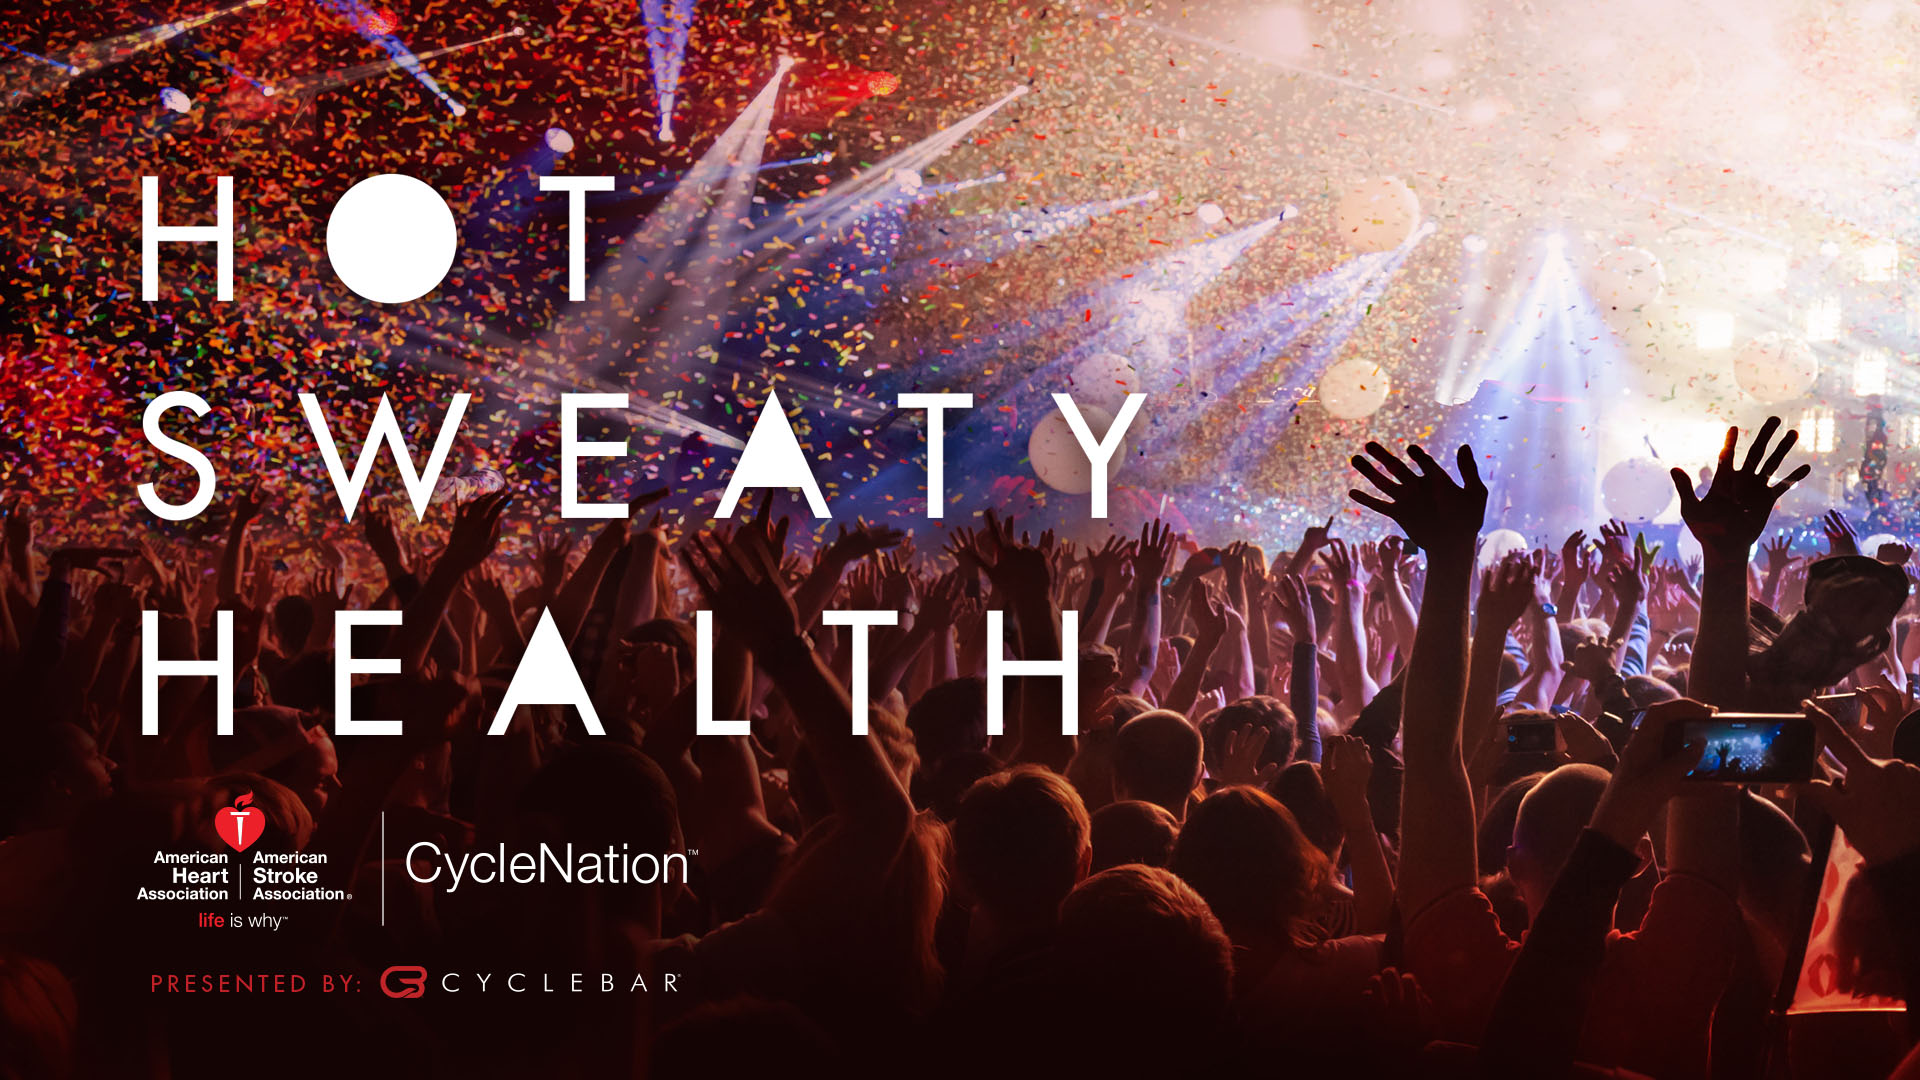 CYCLENATION LAUNCH CAMPAIGN